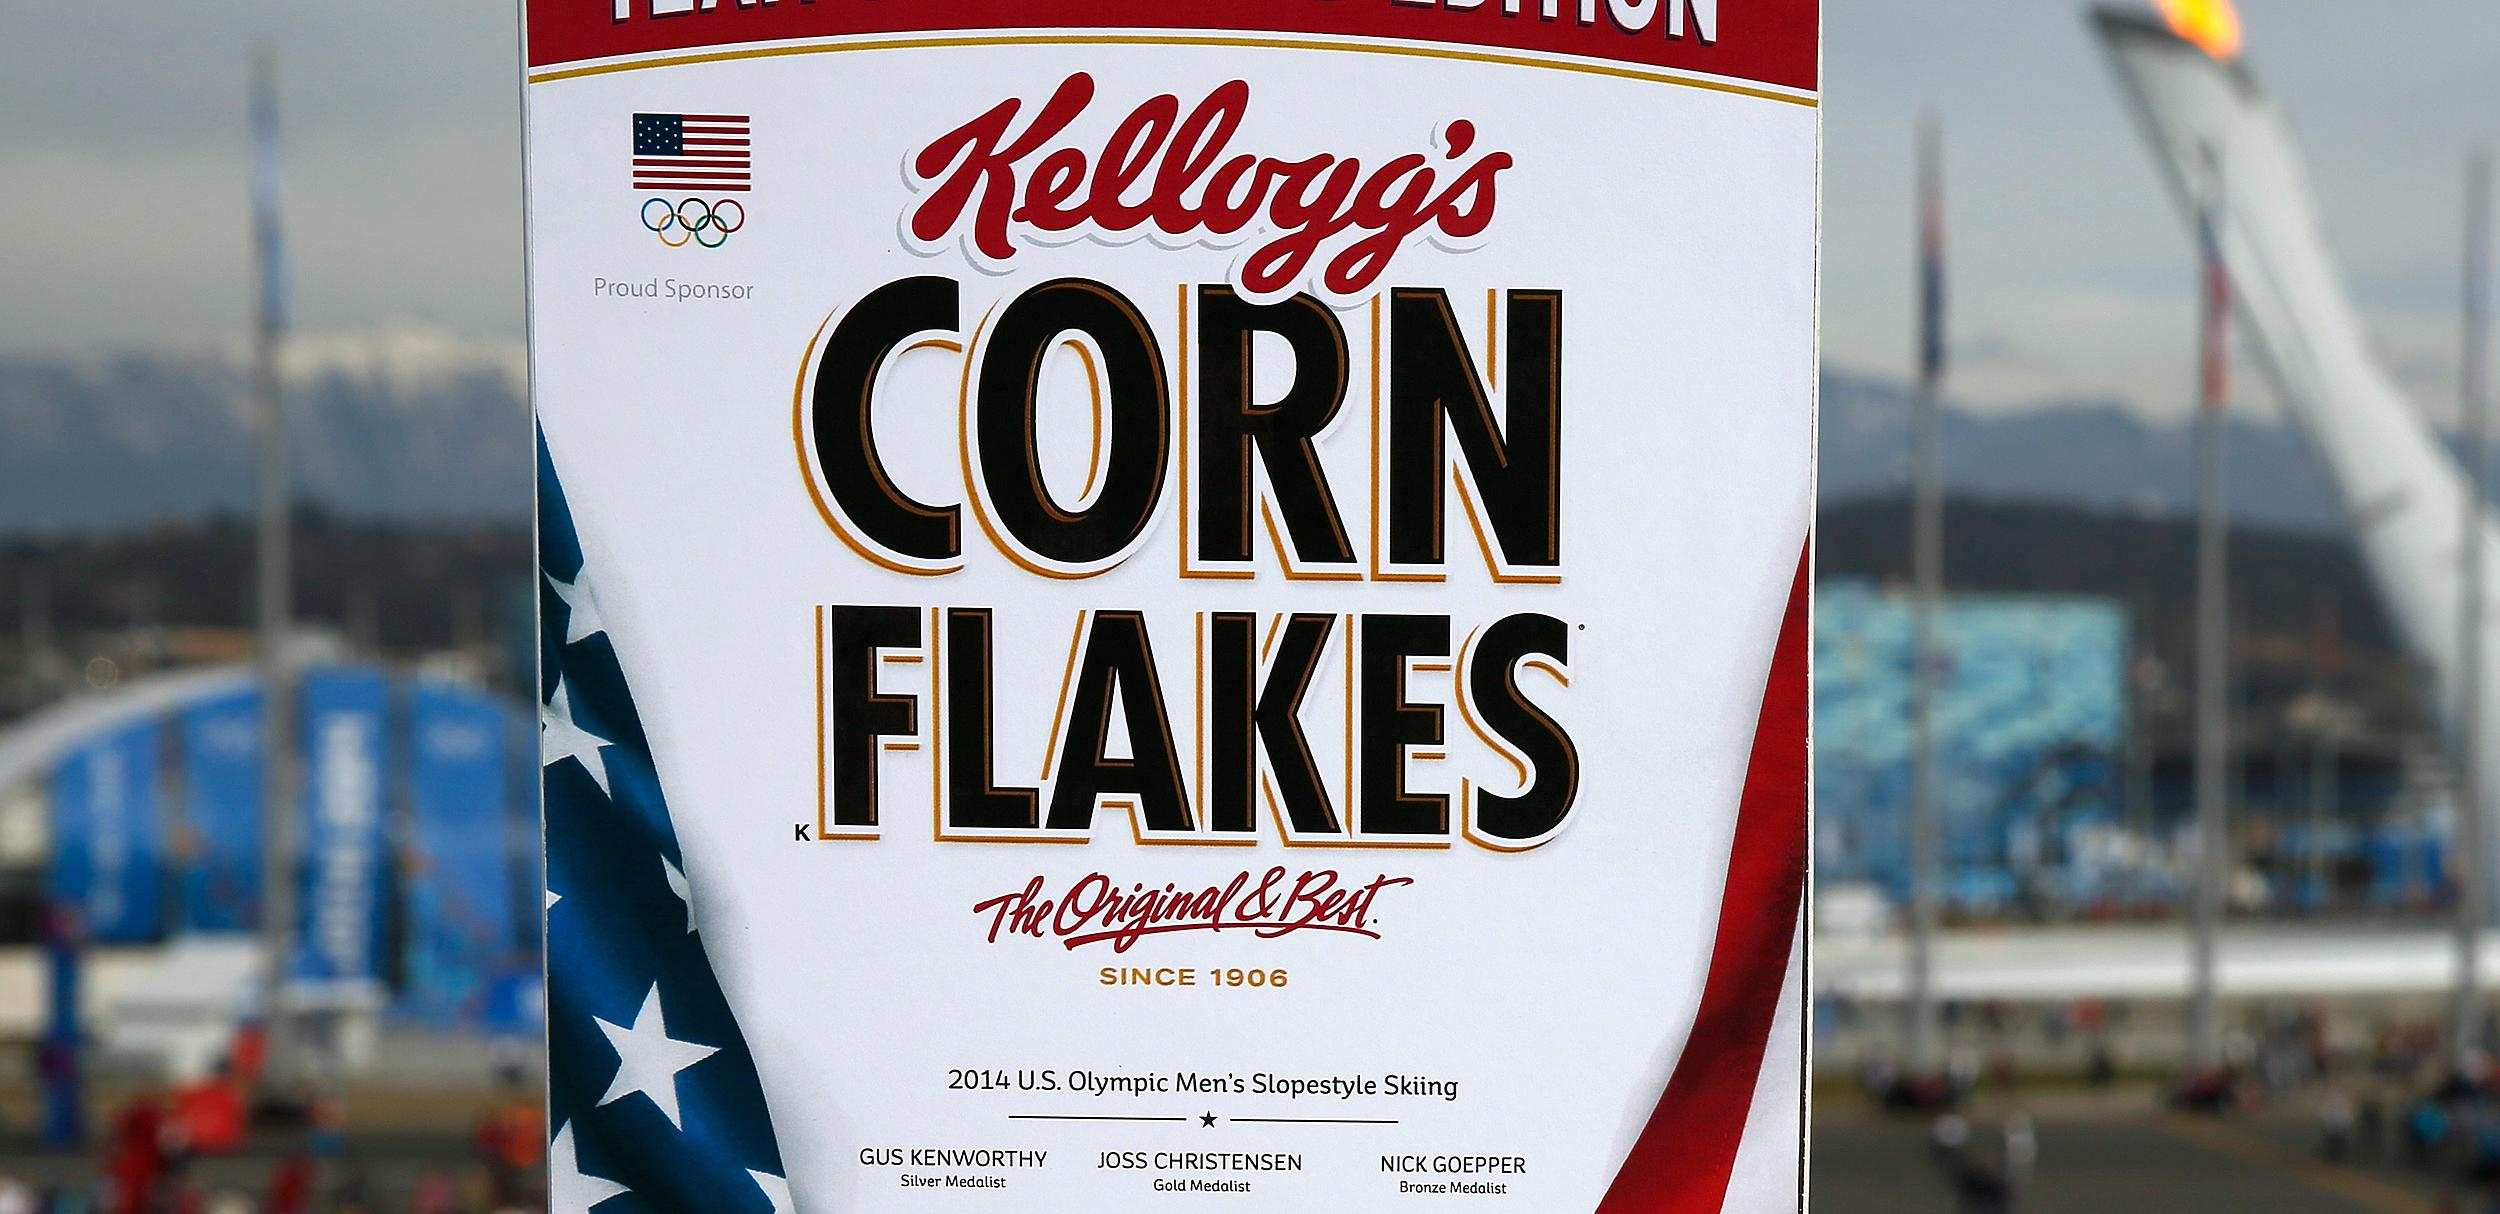 Why Didn't We Think Of That?' Turning Corn Flakes To IPA